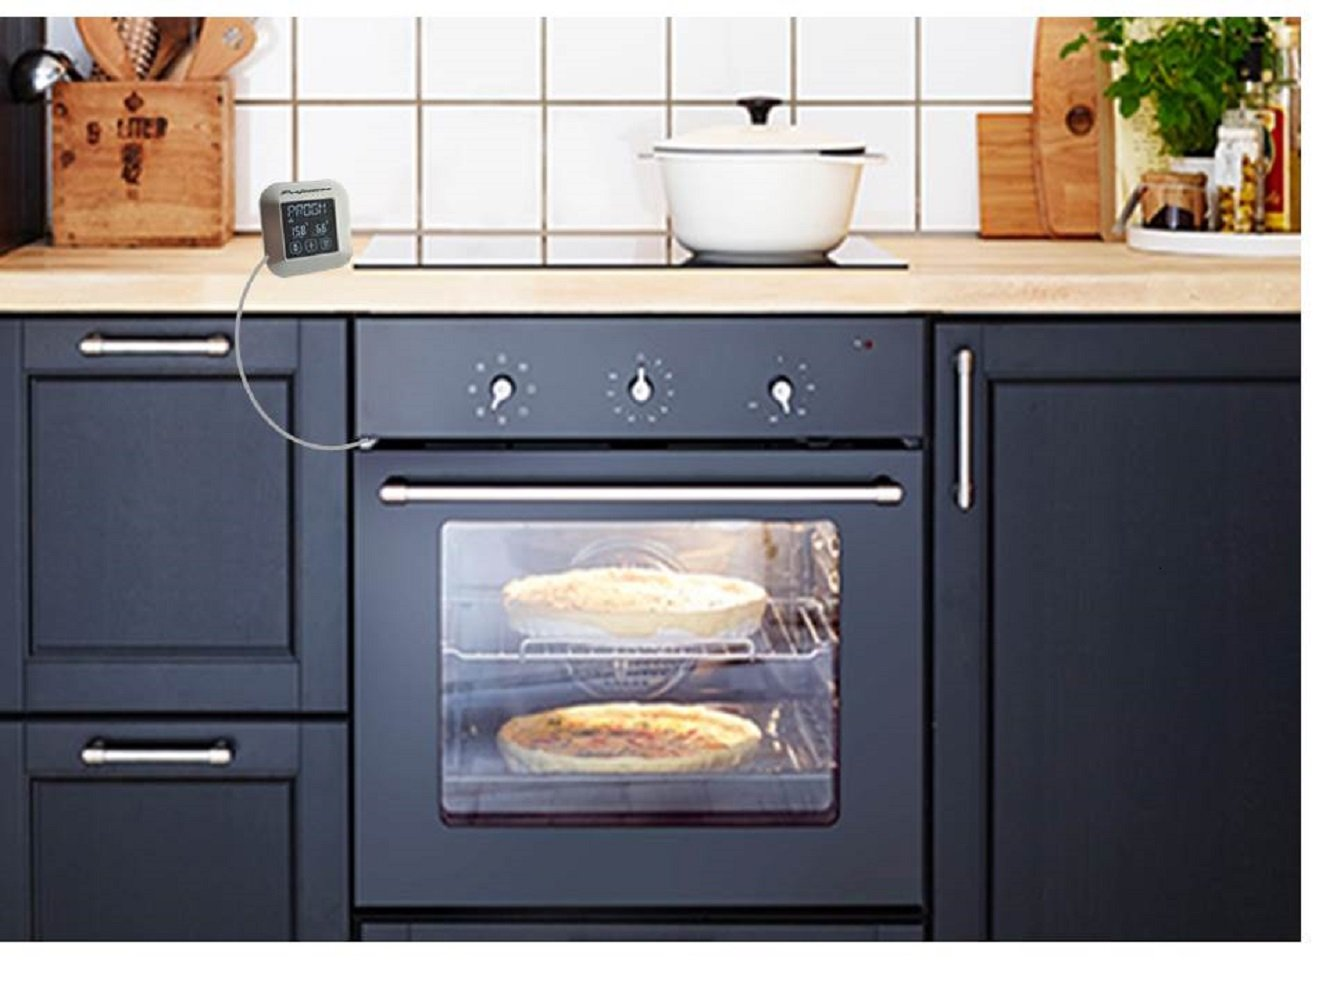 icon zm oven collection wall appliances kitchen electric electrolux cooking qv hov ovens double